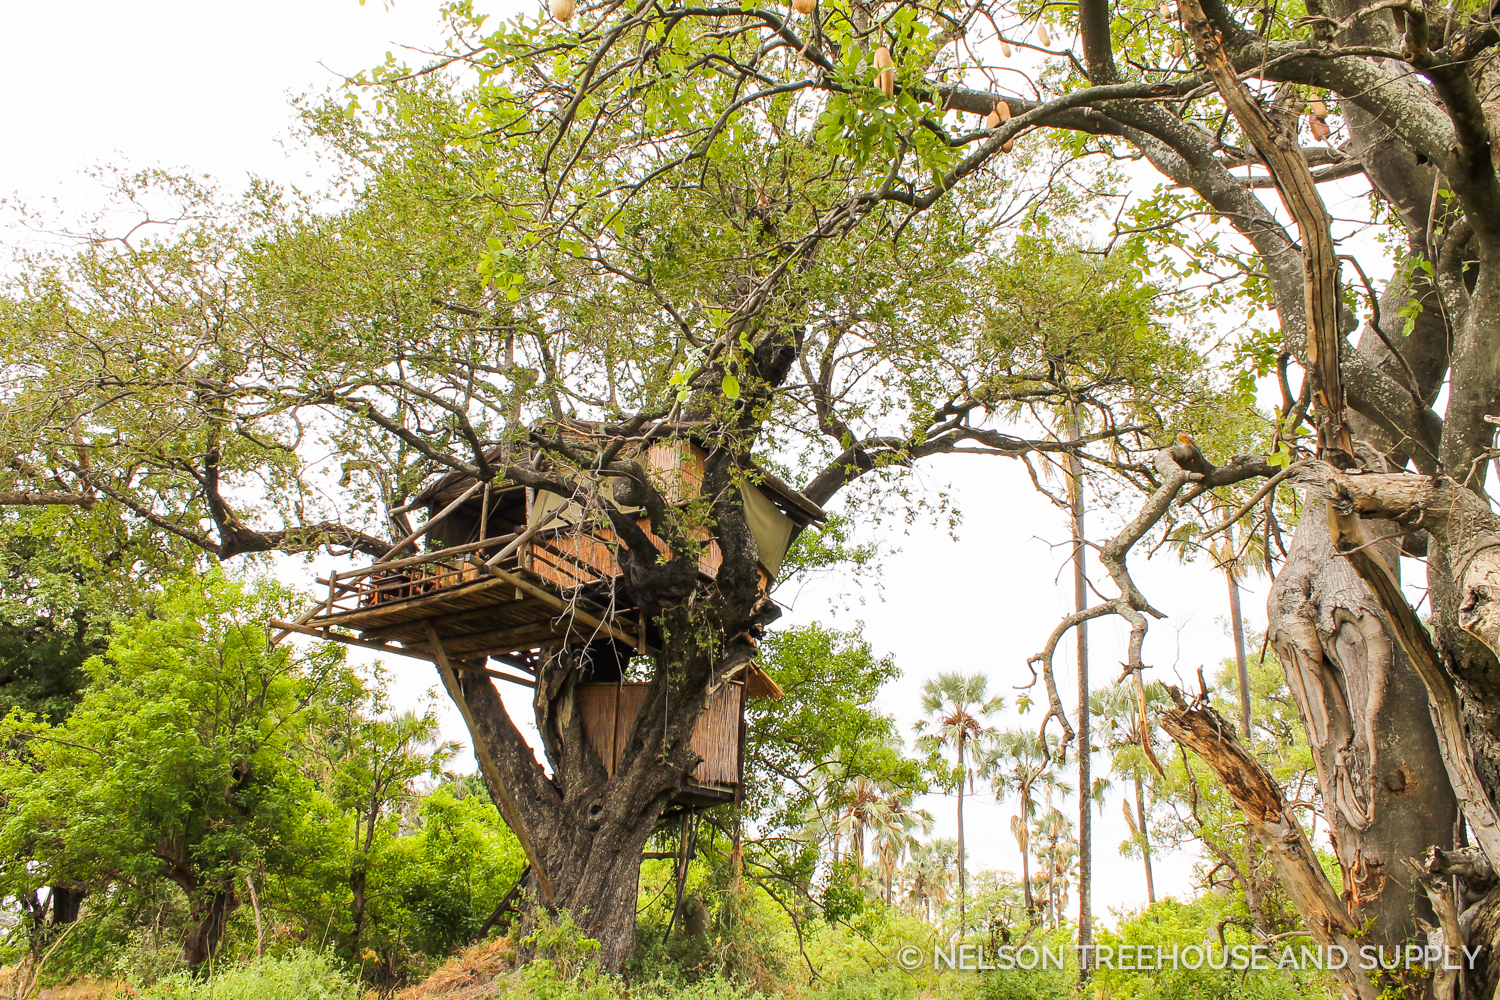 Odd ball Camp treehouse in Botswana. Photo by Dylan Rauch.